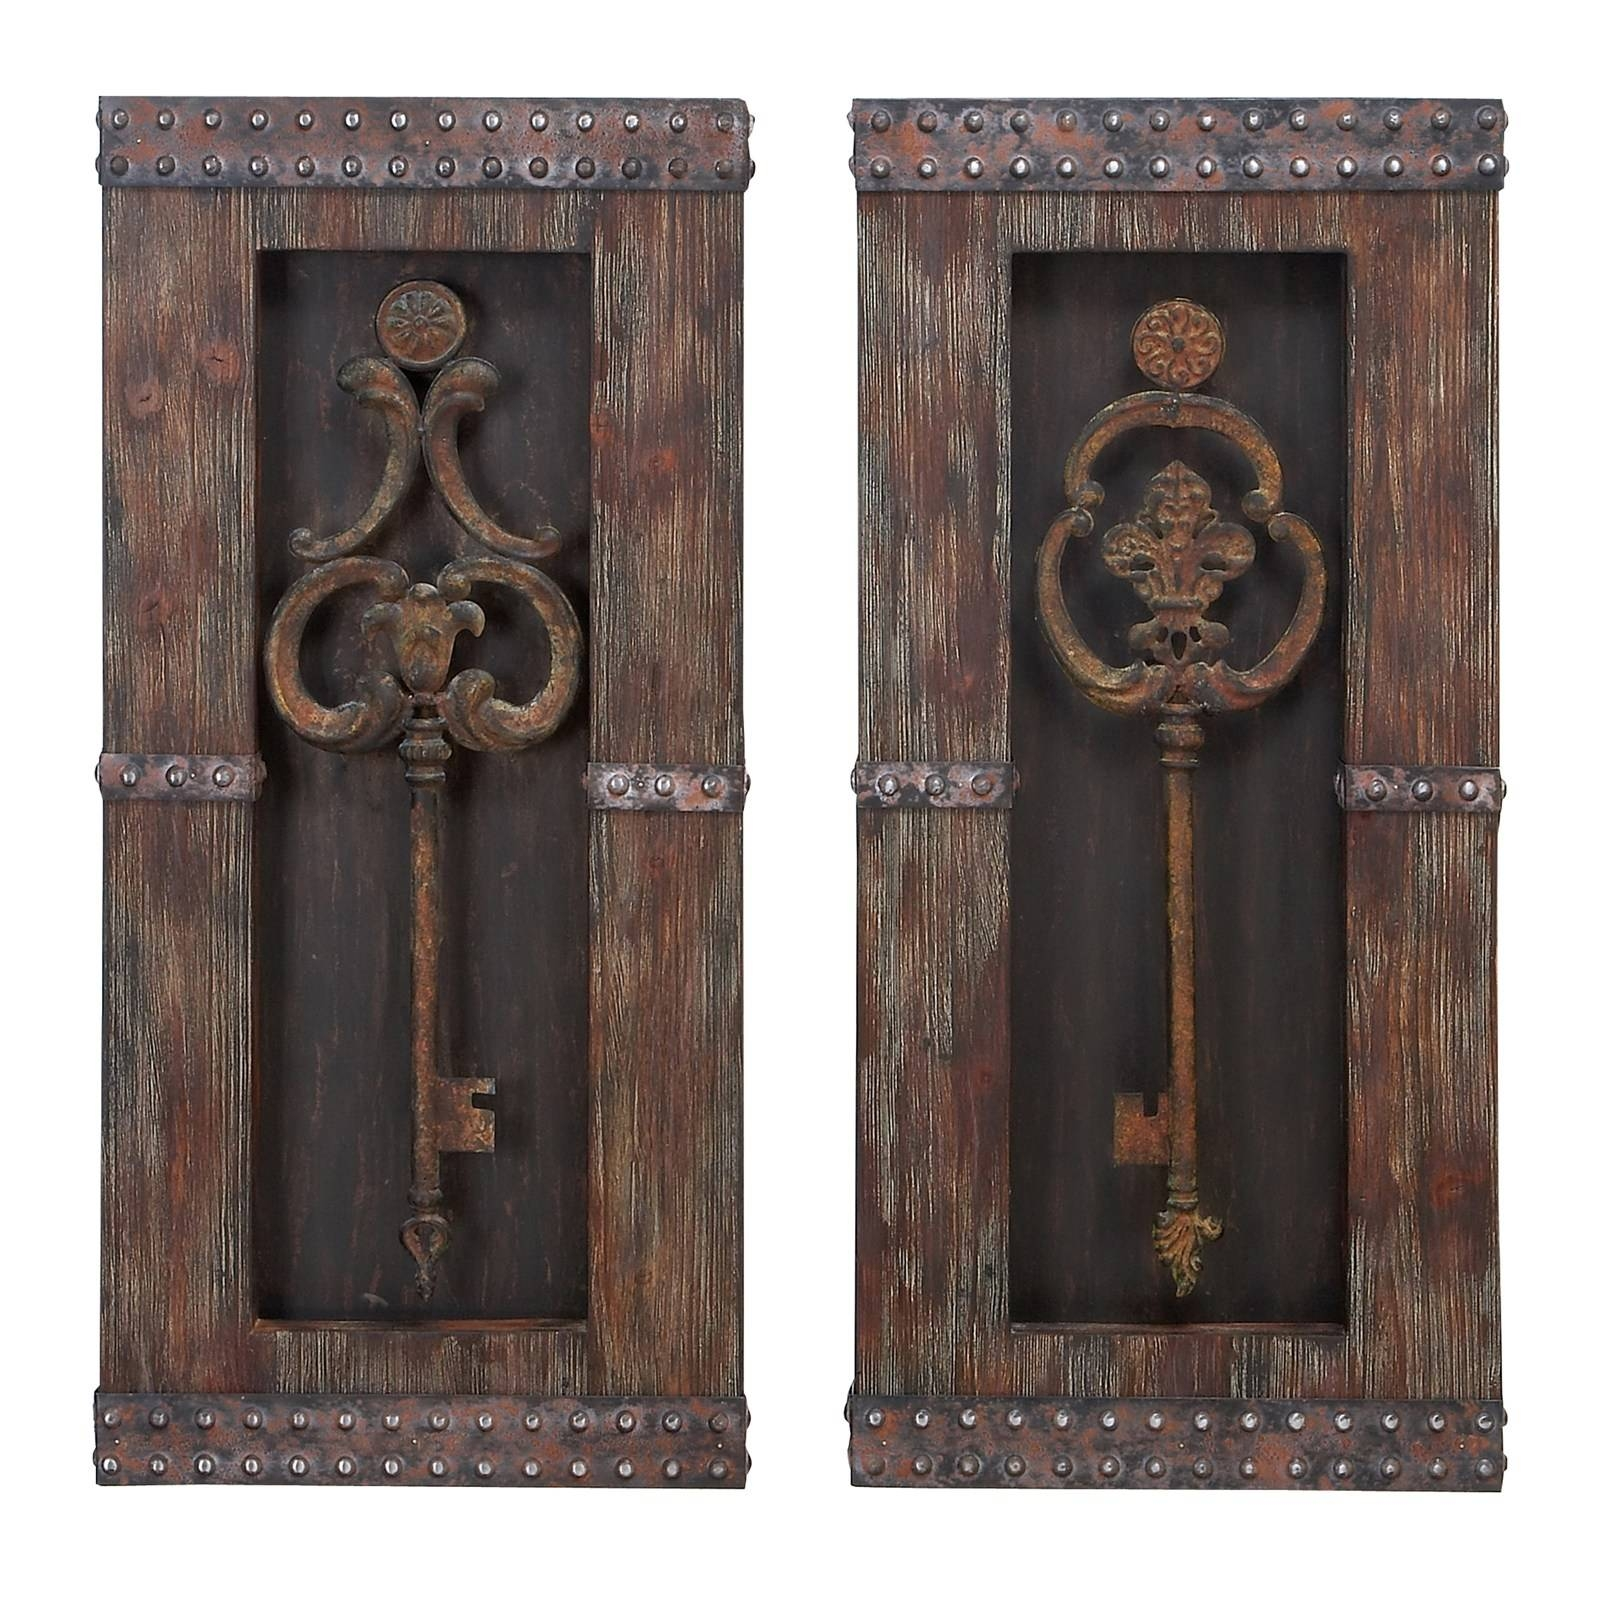 Casa Cortes Vintage Metal Keys 2 Piece Wall Art Decor Set – Free Intended For Current Vintage Metal Wall Art (View 5 of 20)